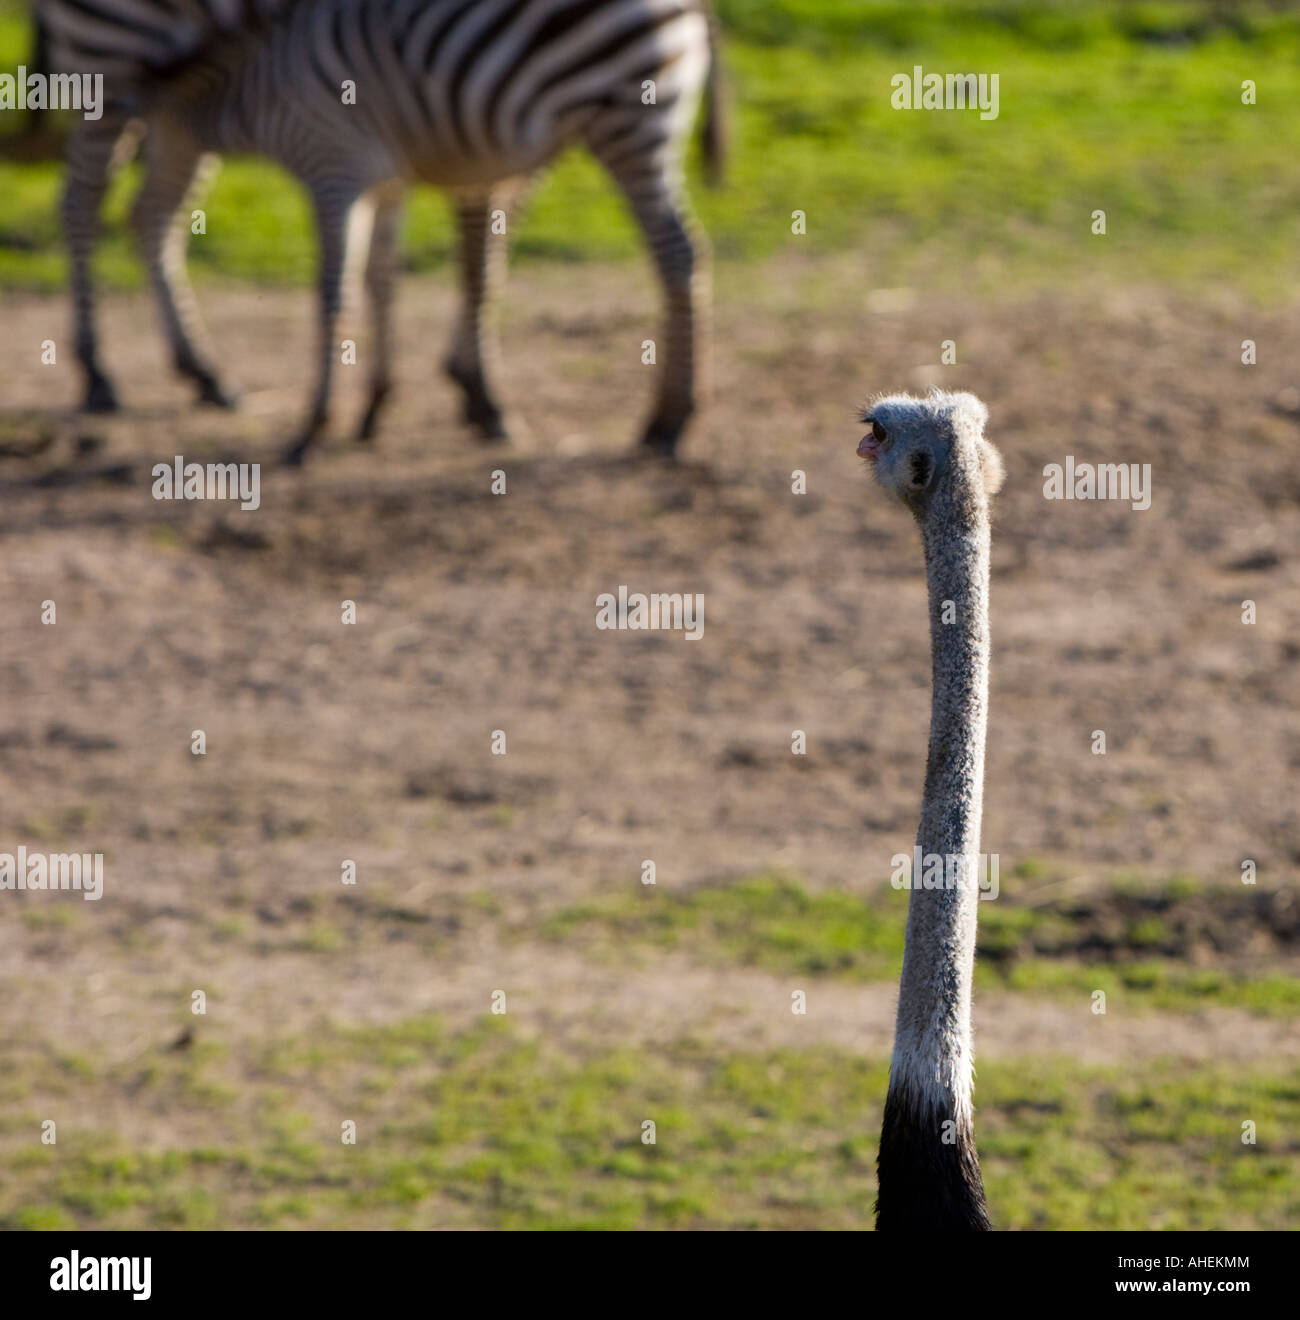 Osterage watching Zebras - Stock Image